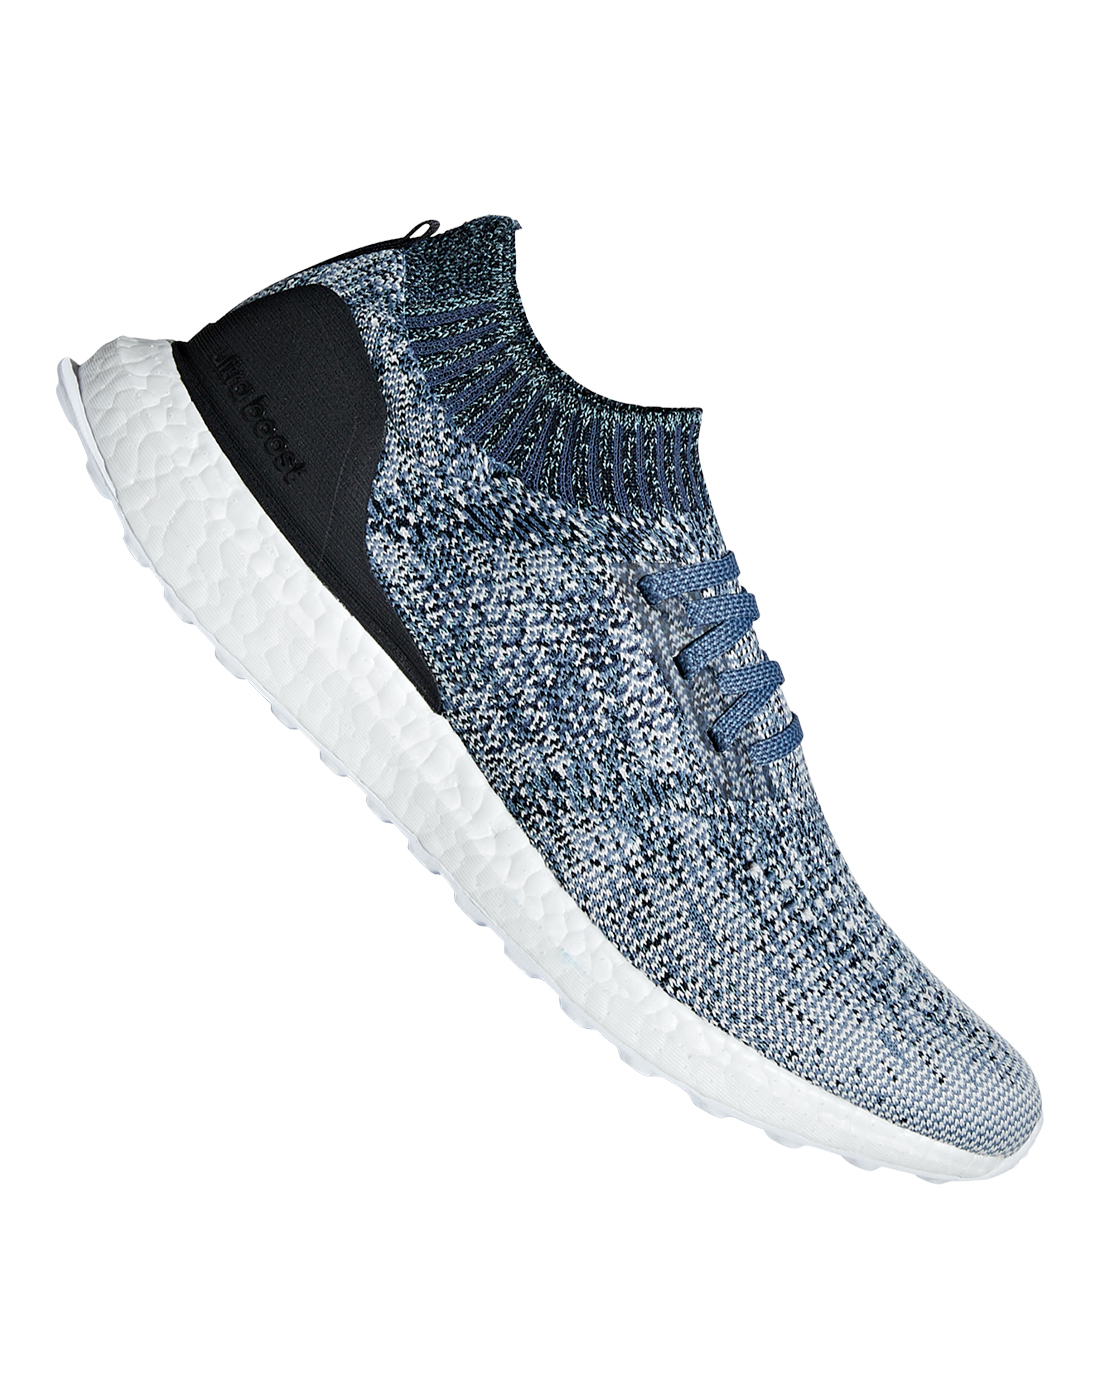 235f3a18c5f6a adidas. Mens Ultraboost Uncaged Parley. Mens Ultraboost Uncaged Parley · Mens  Ultraboost Uncaged Parley · Mens Ultraboost Uncaged Parley. FOR RUNNING